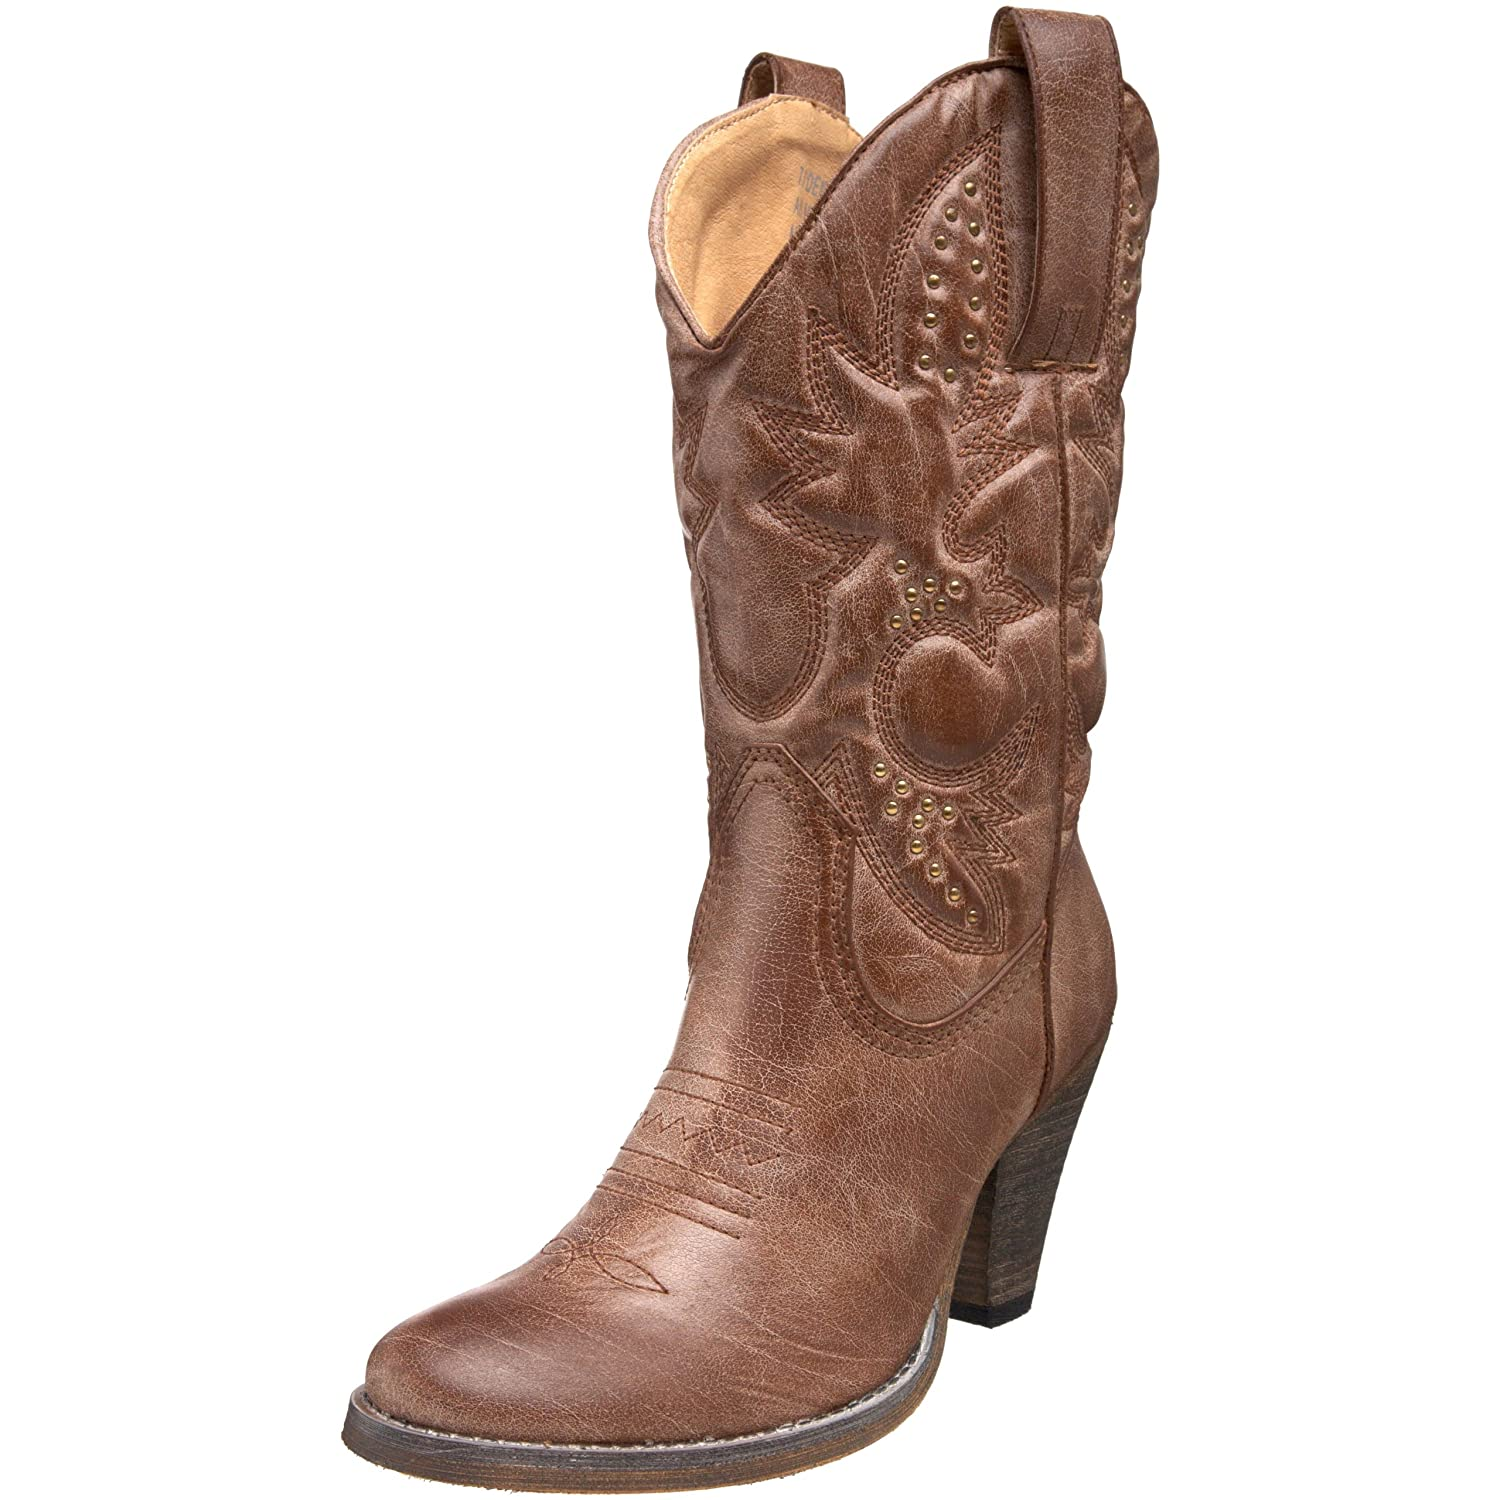 Very Cheap Cowboy Boots - Boot Hto